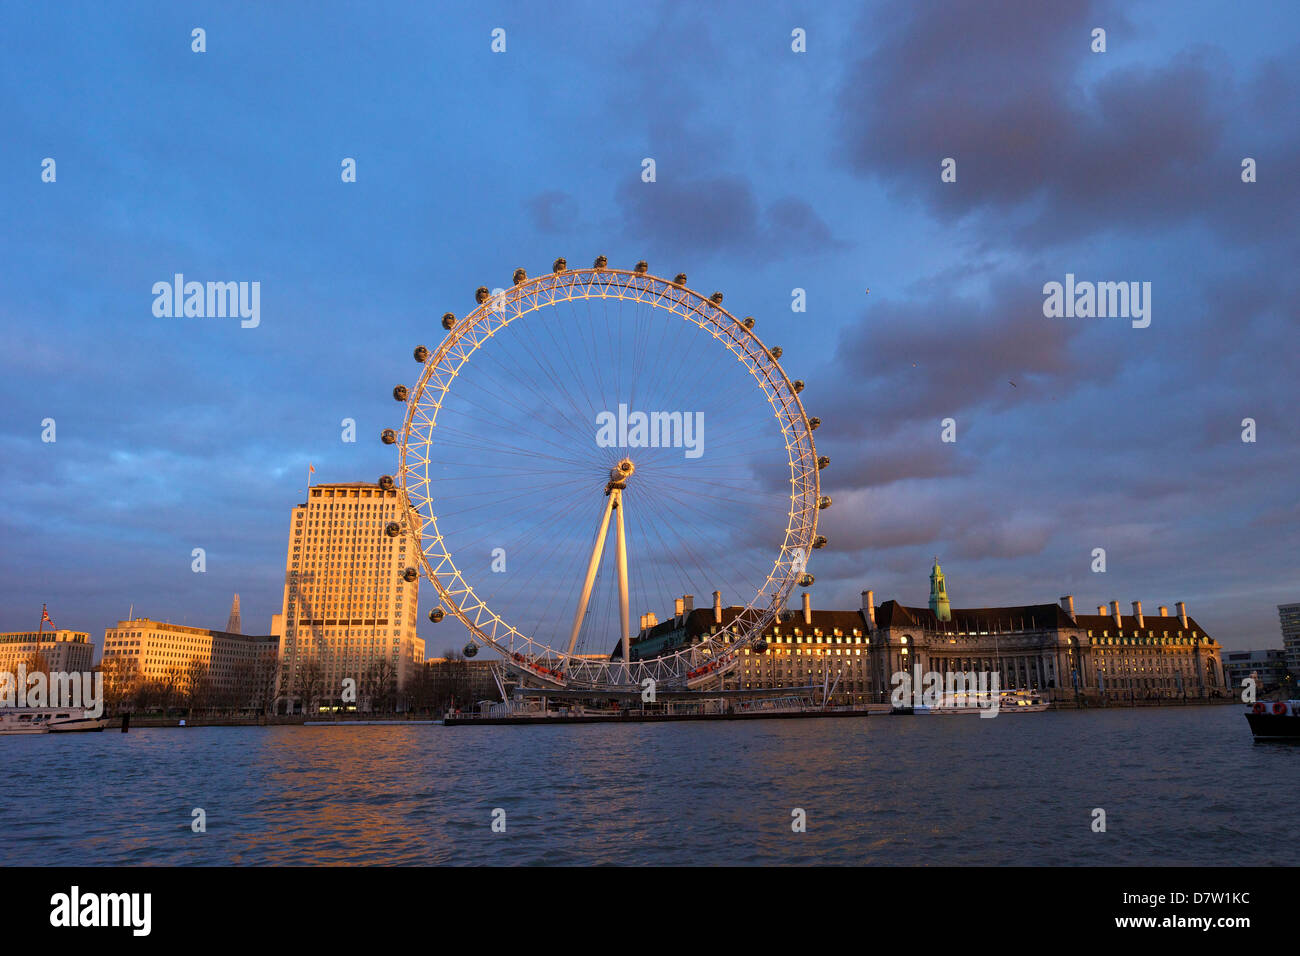 London Eye, River Thames, and City Hall from Victoria Embankment at sunset, London, England, United Kingdom - Stock Image